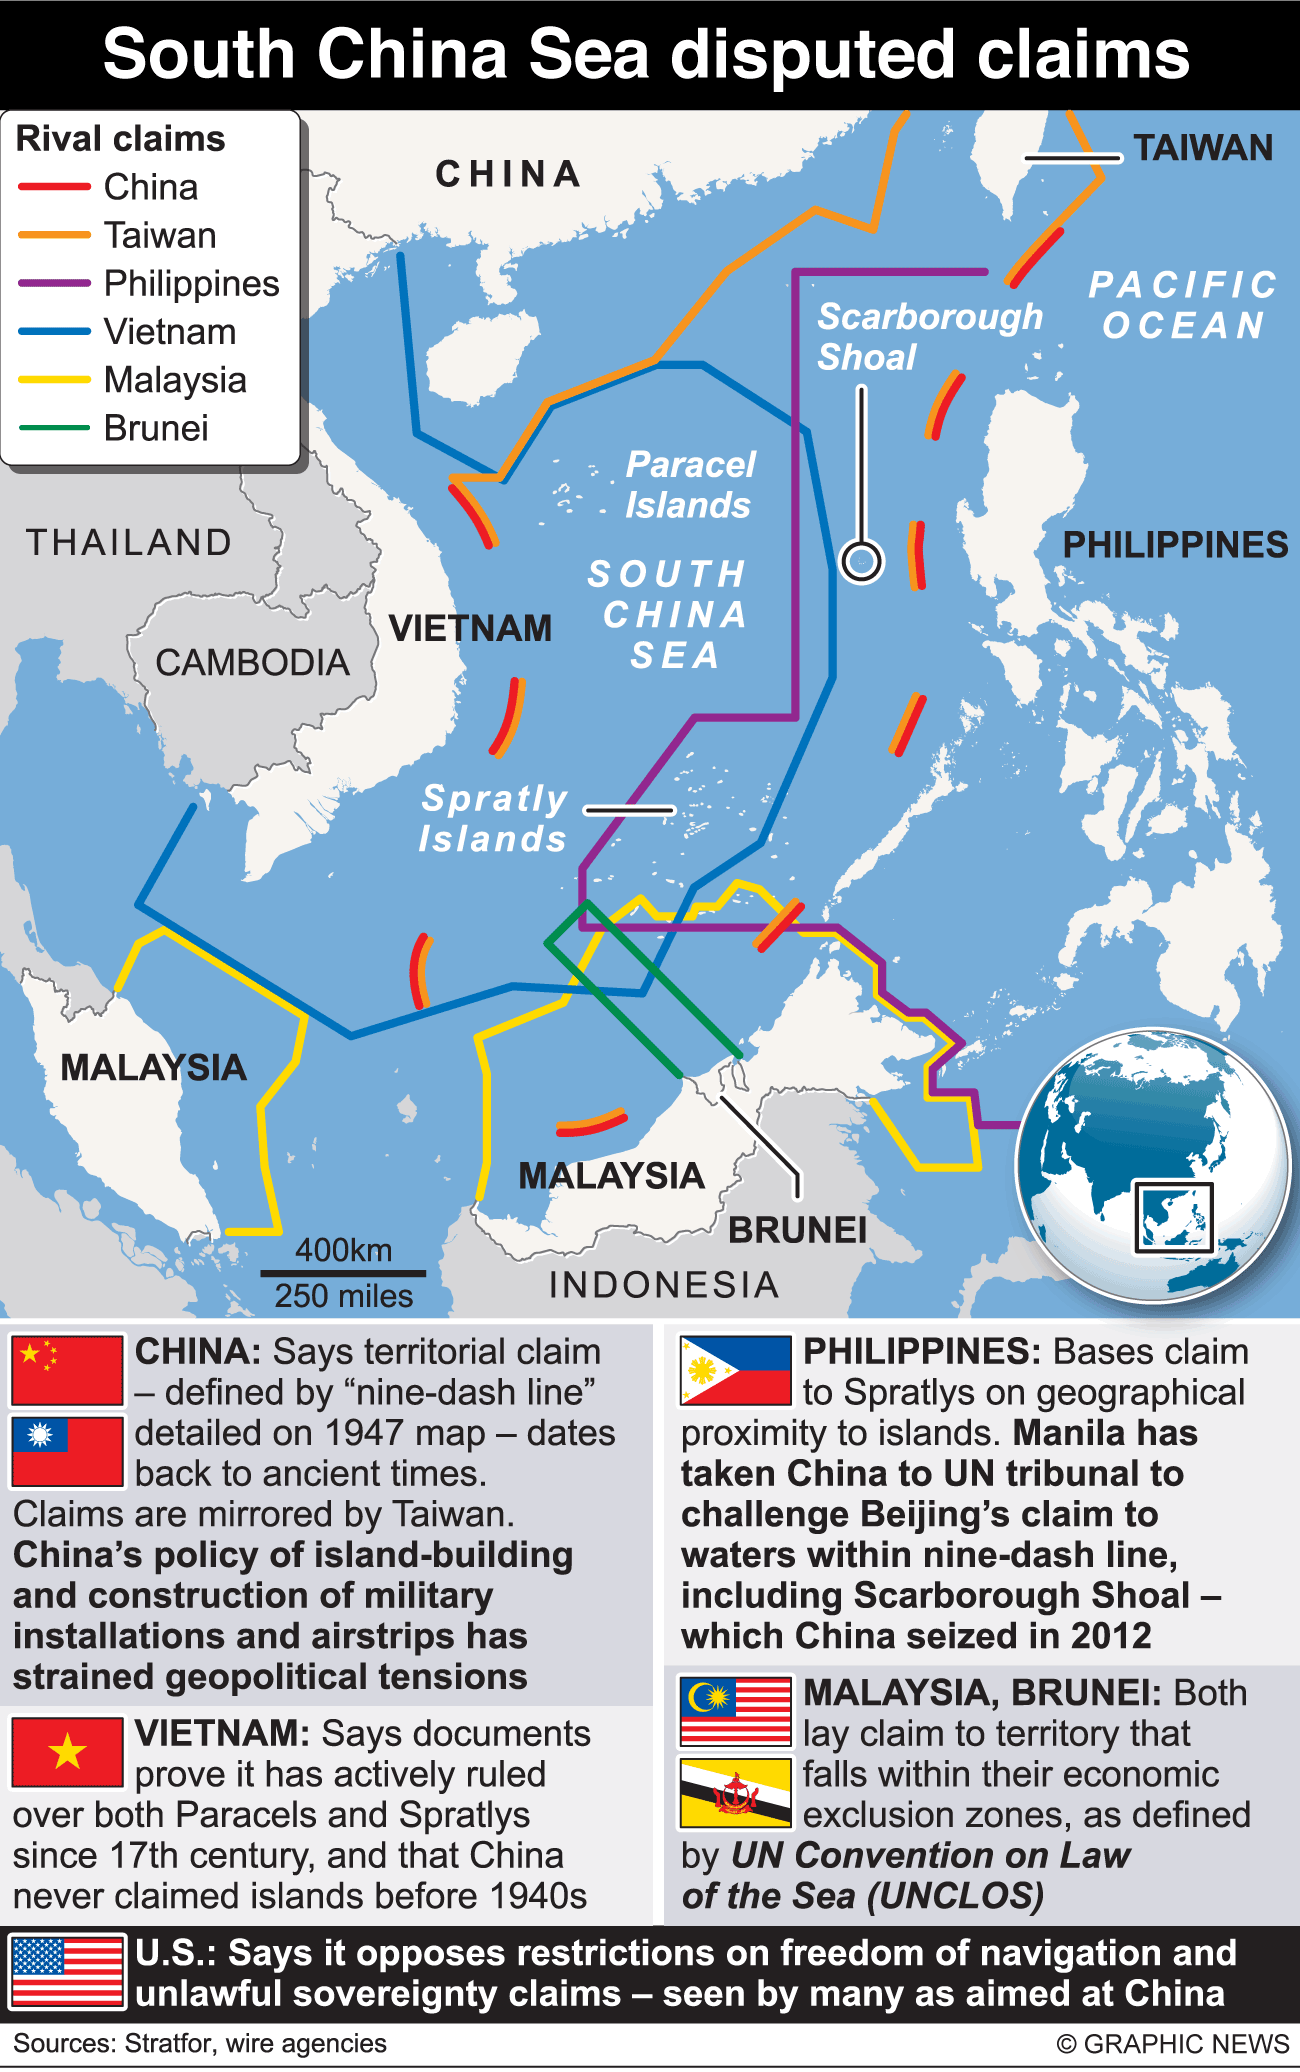 NED-0784-South-China-Sea-Disputed-Claims - 0